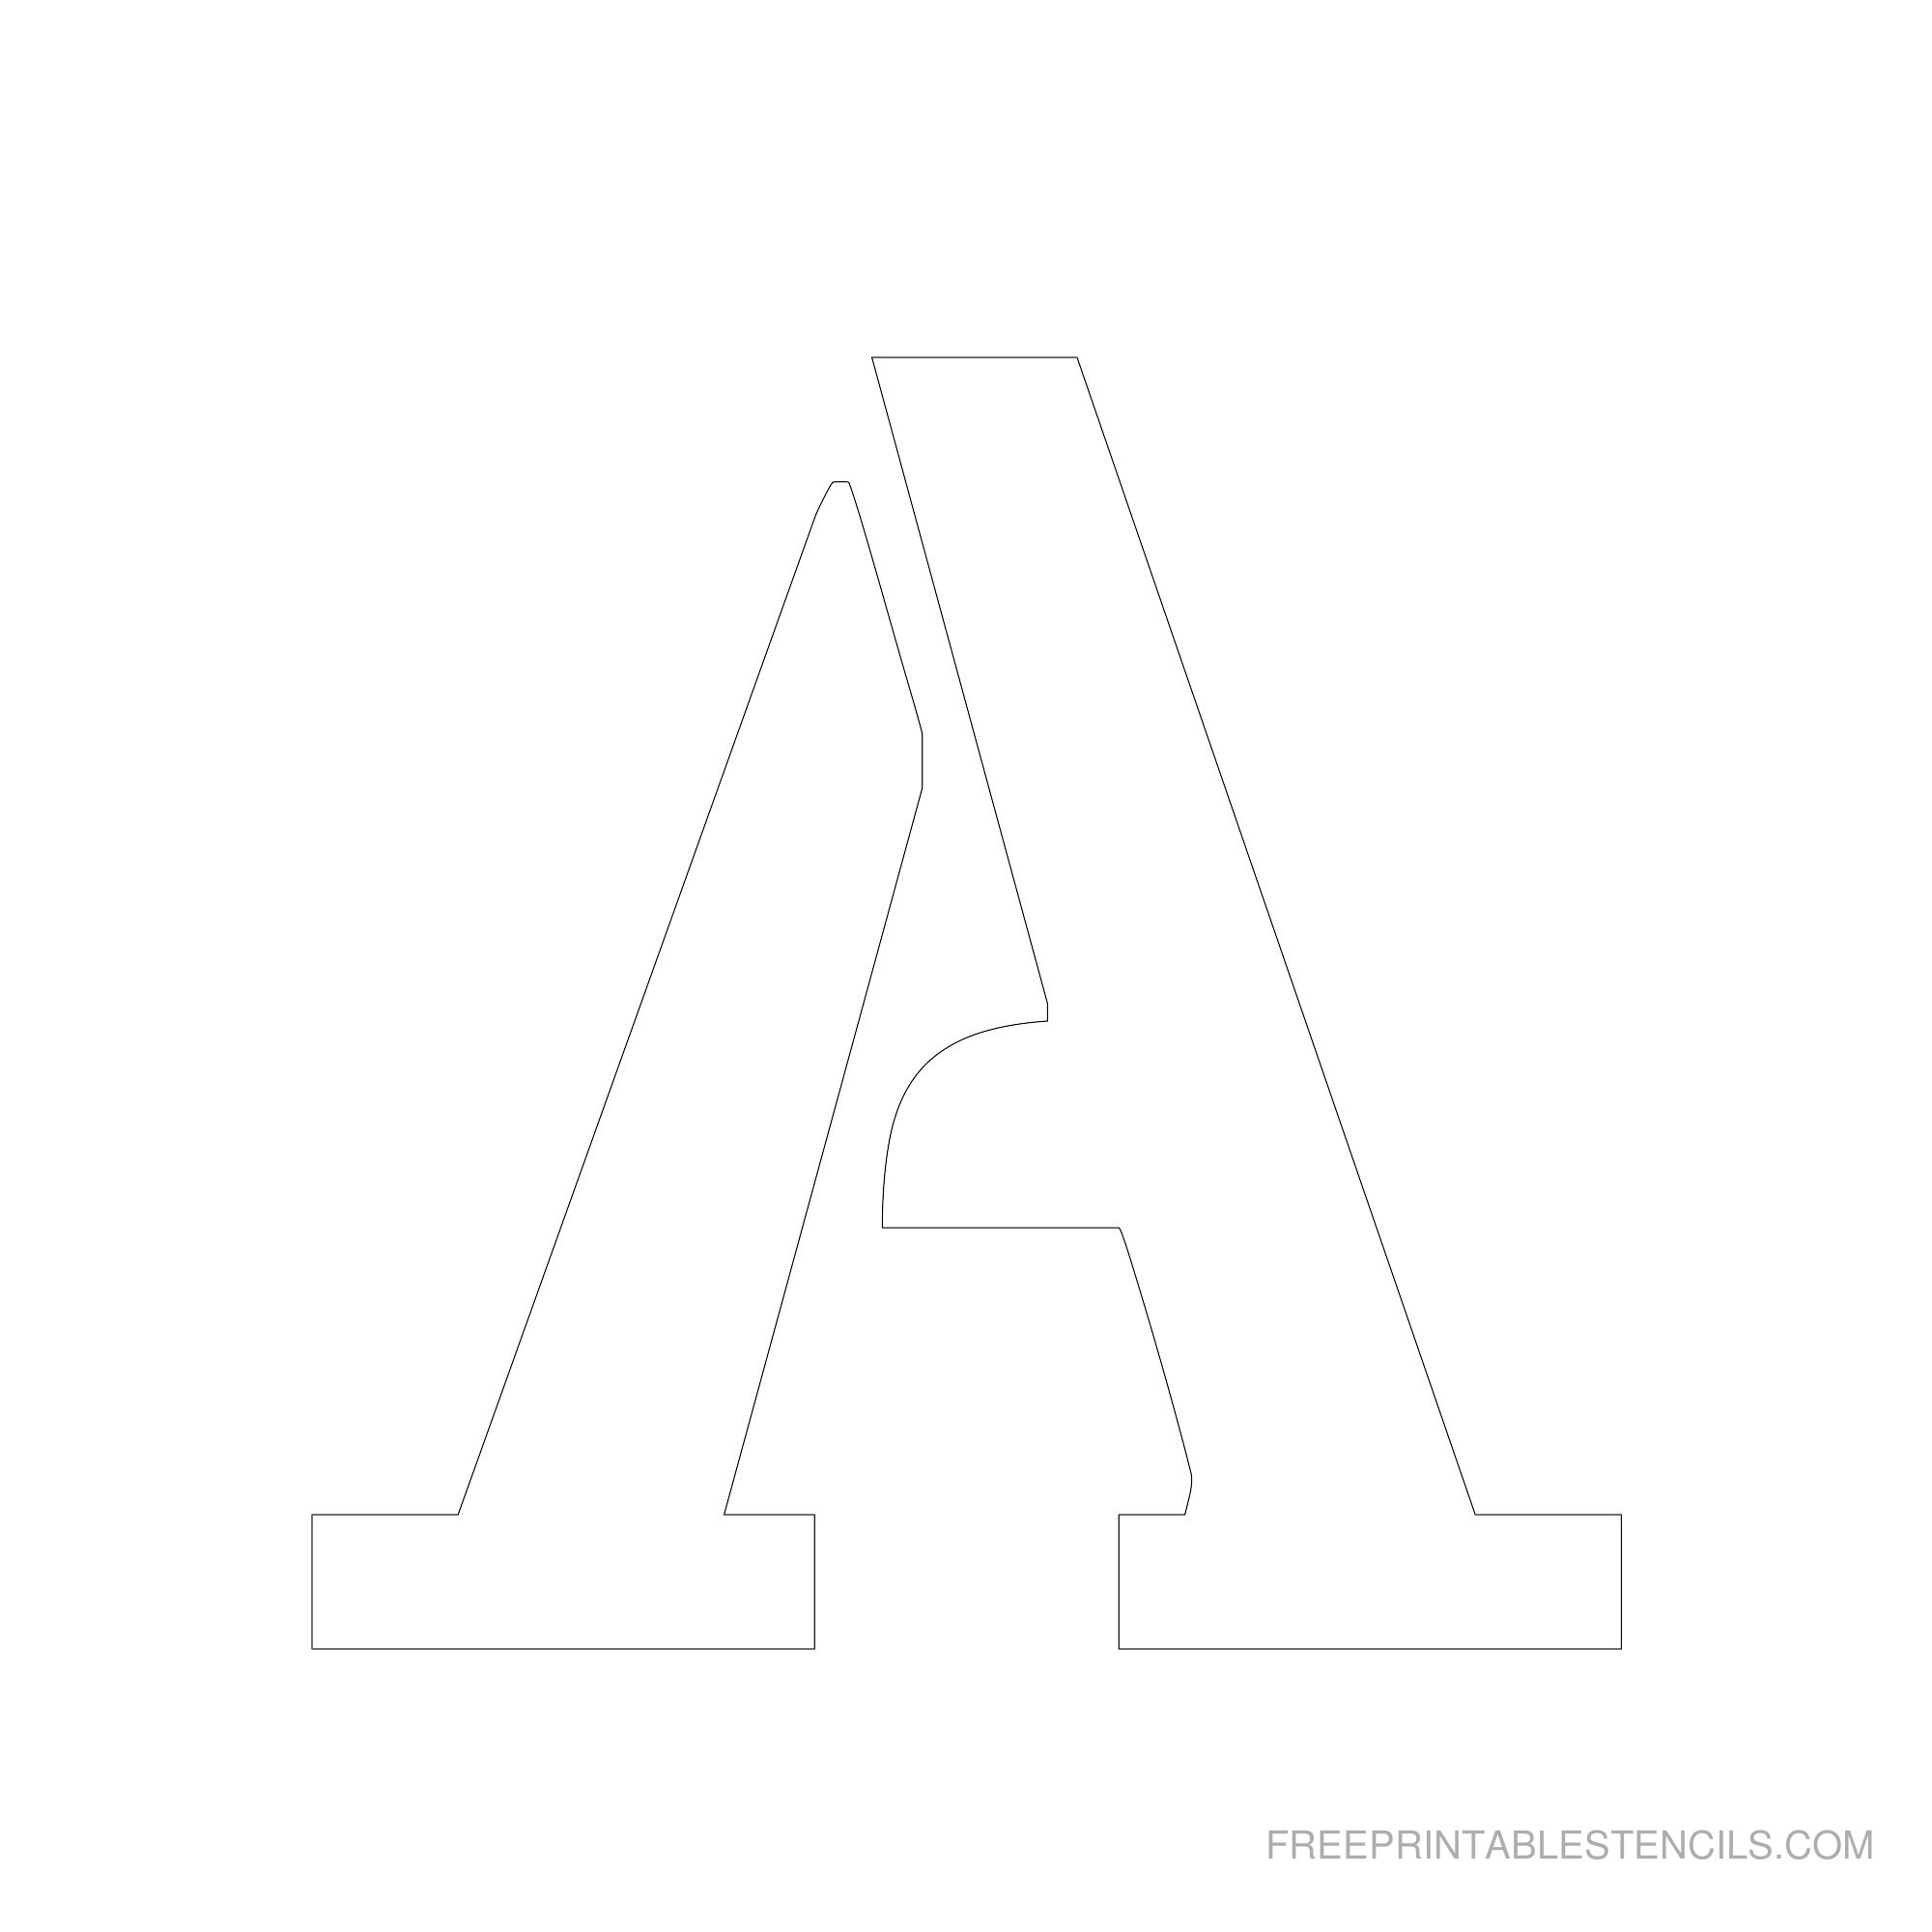 Printable 6 Inch Letter Stencils A-Z | Free Printable Stencils - Free Printable Letters Az